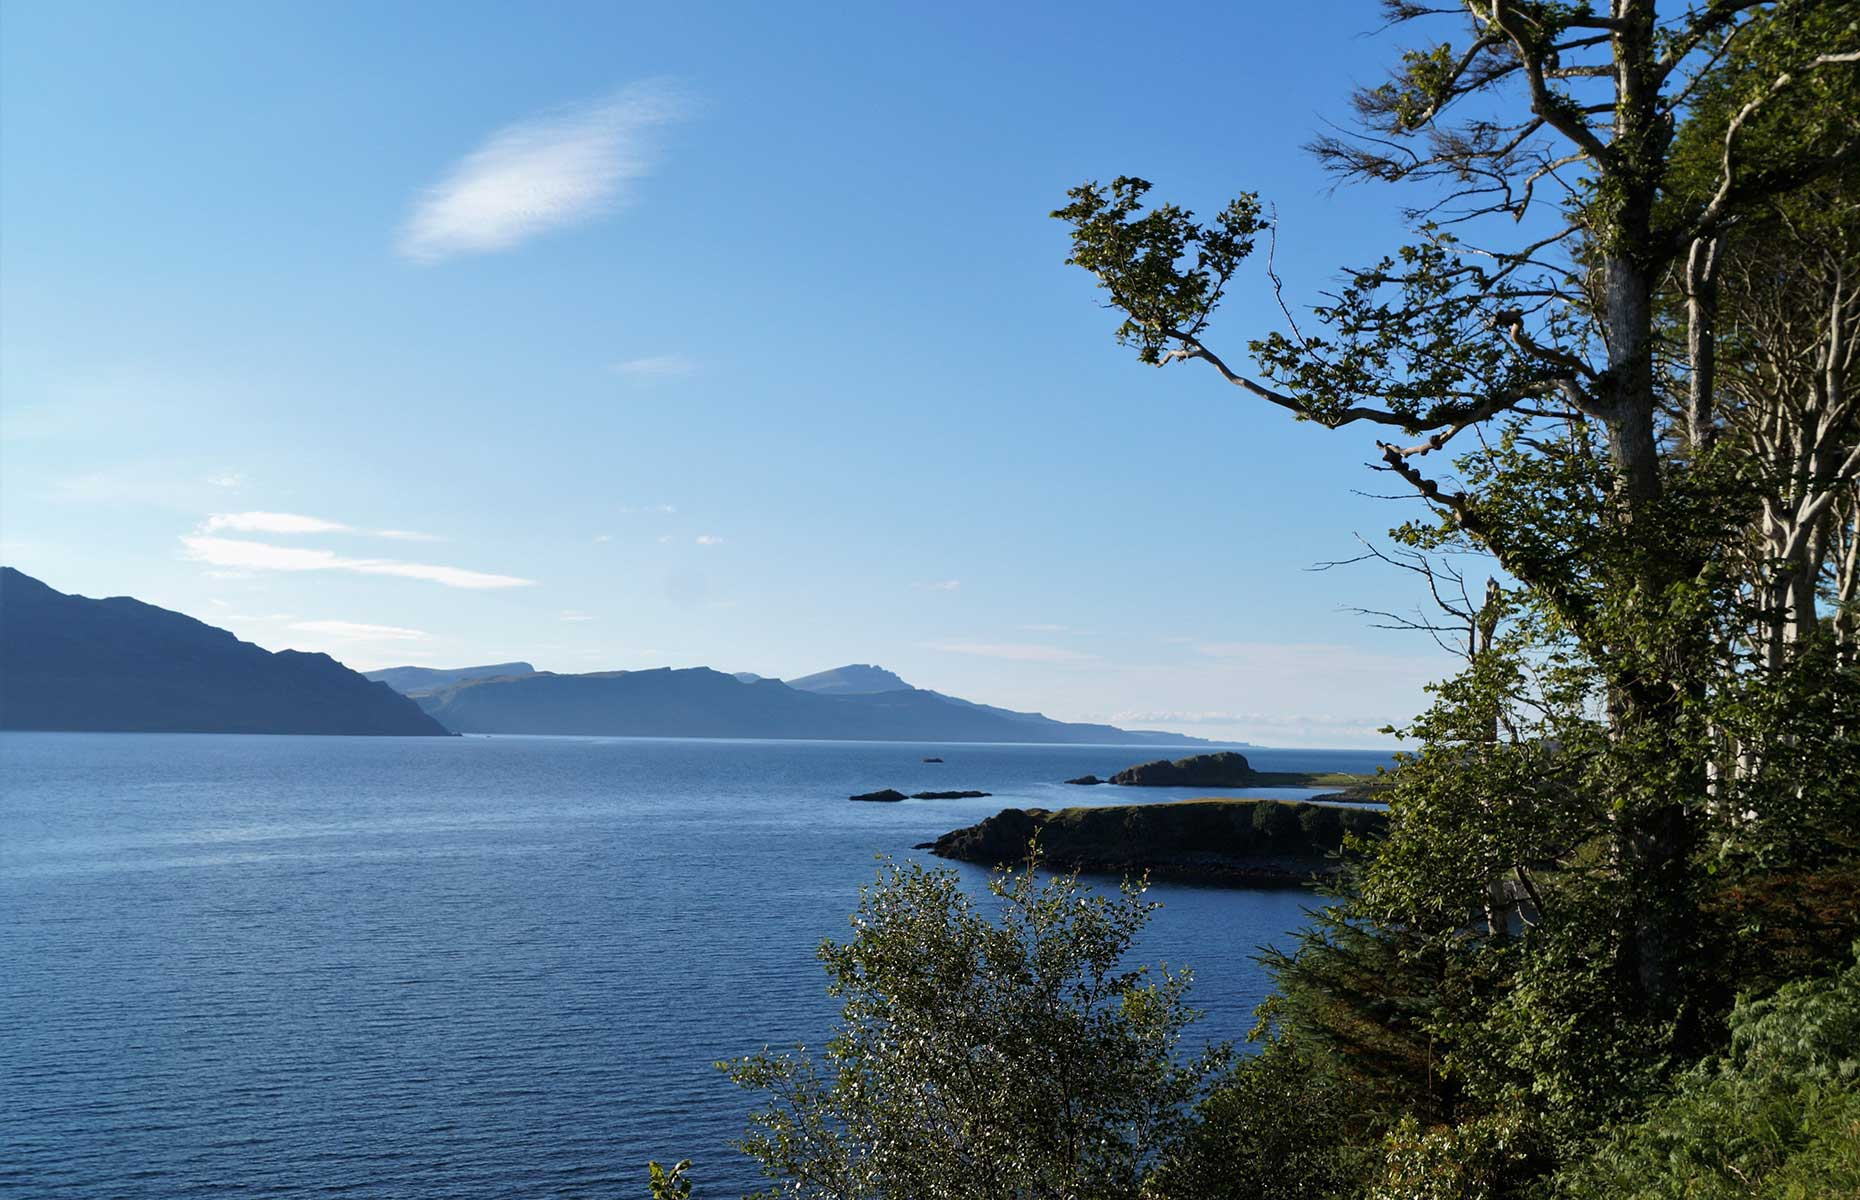 The Isle of Raasy, Scotland, is an off the beaten track place if you want to experience distilleries too